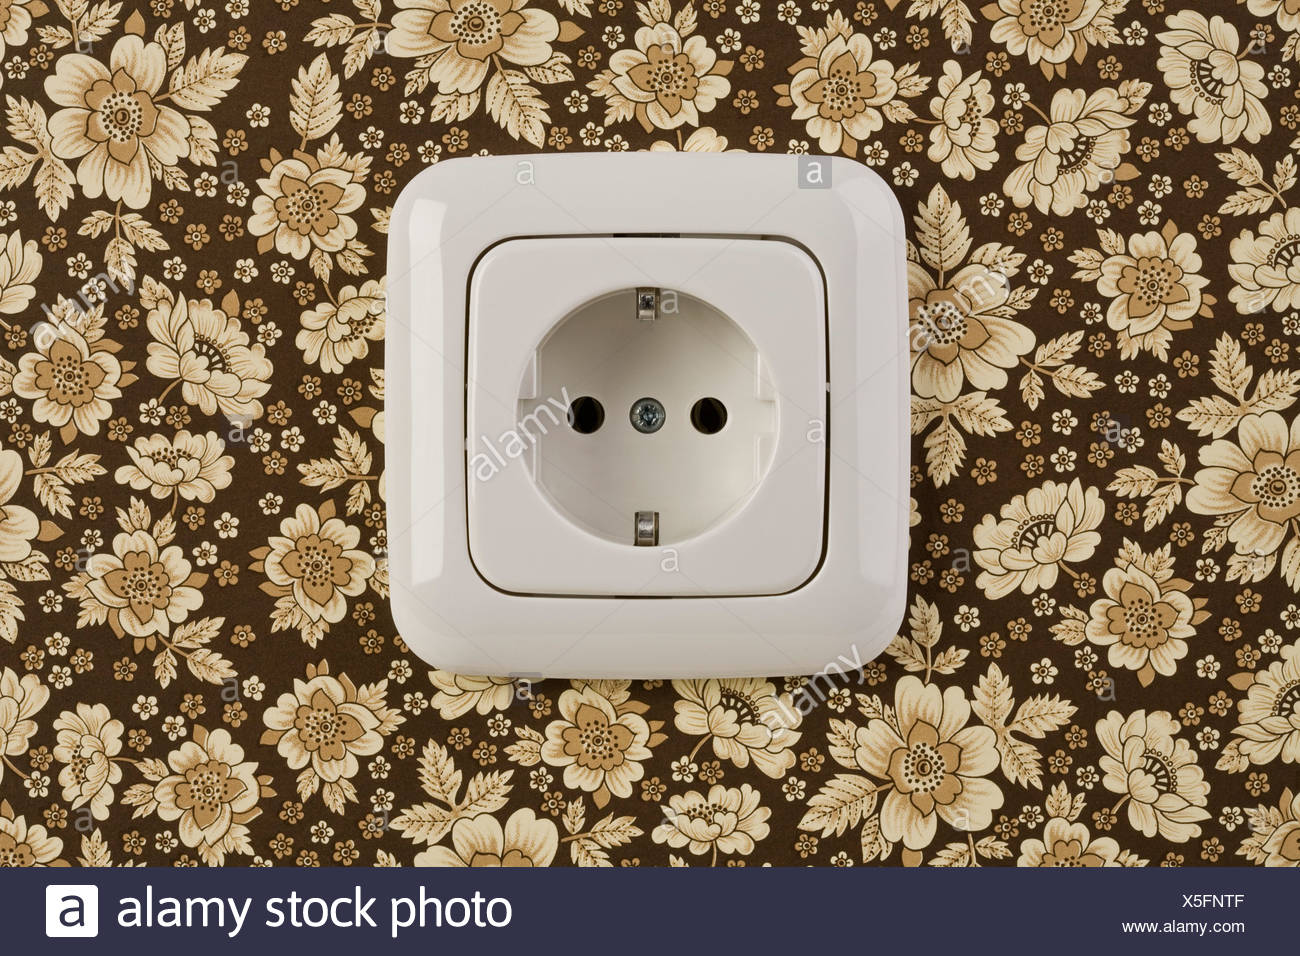 An outlet on wallpaper - Stock Image